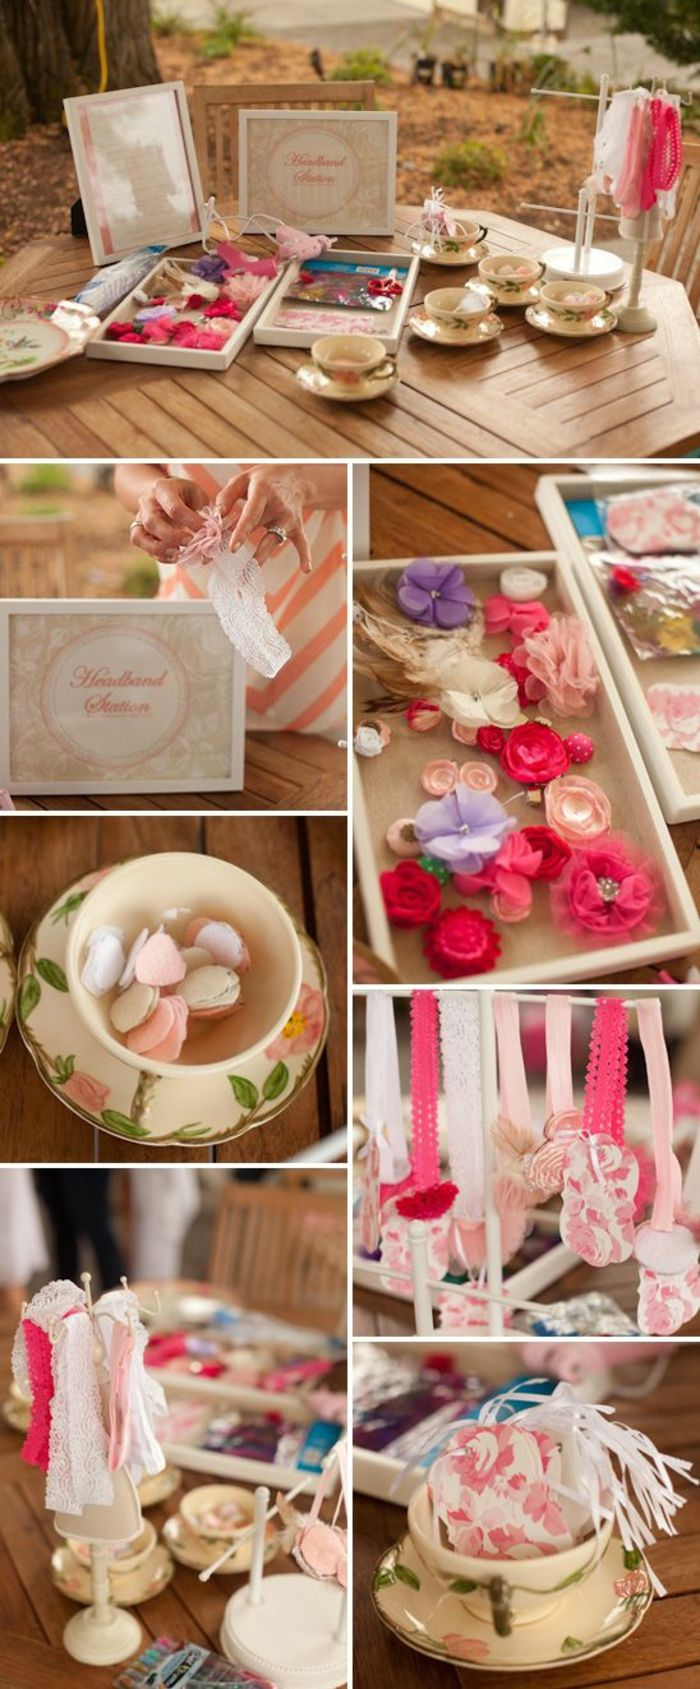 best 25 baby shower jeux ideas on pinterest jeux baby organisation baby shower and jeux pour. Black Bedroom Furniture Sets. Home Design Ideas